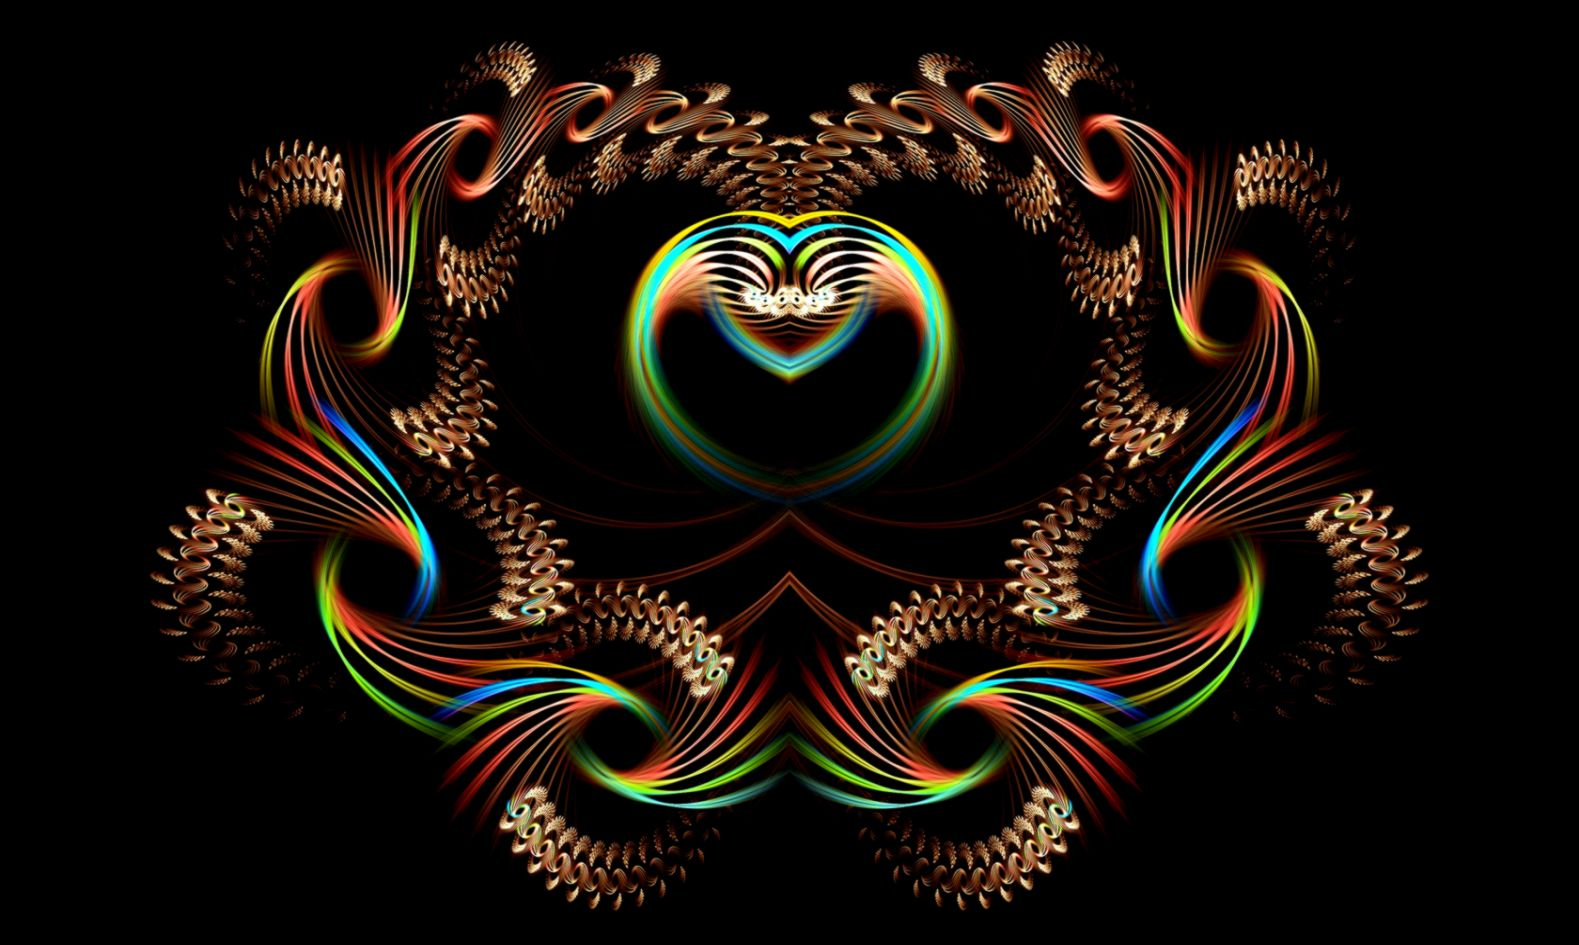 Abstract Fire Love Hearts All HD Wallpapers